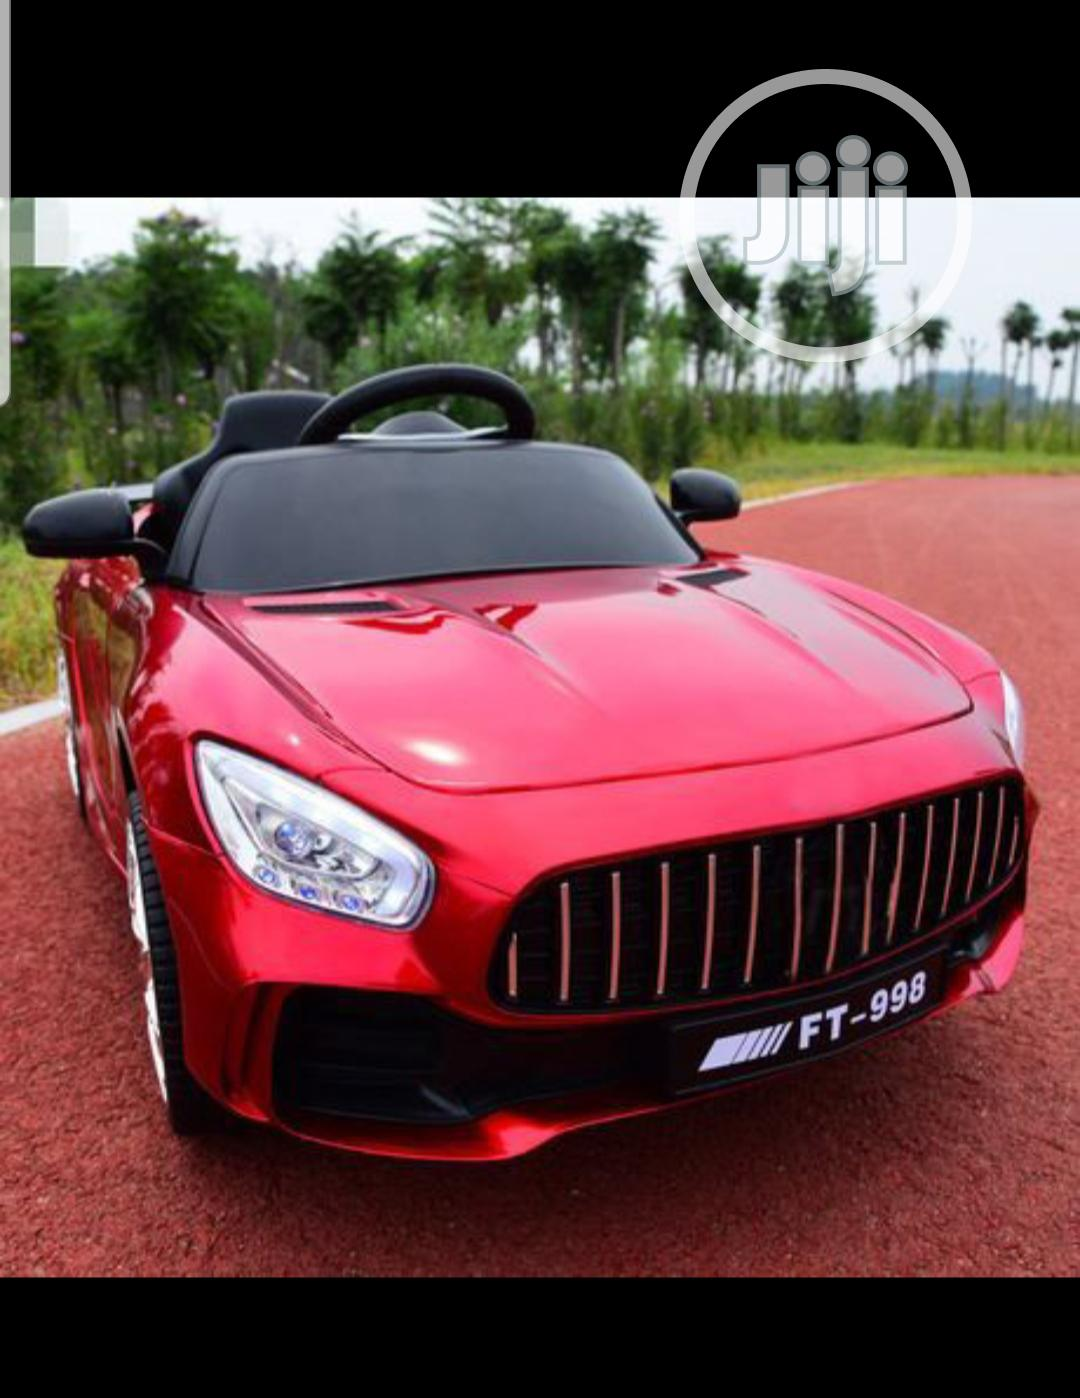 Archive: Electric Mercedes-Benz FT 998 Kids Ride on Car With Remote